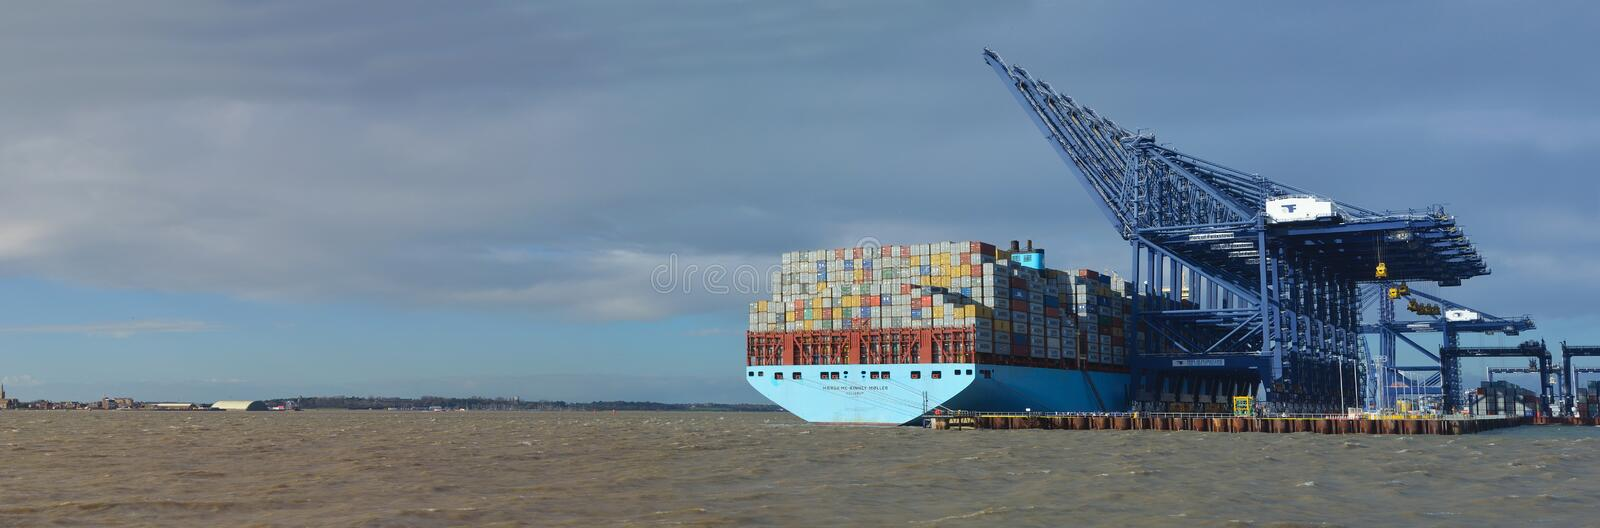 Container ship being unloaded at Felixstowe panorama docks suffolk England. royalty free stock image